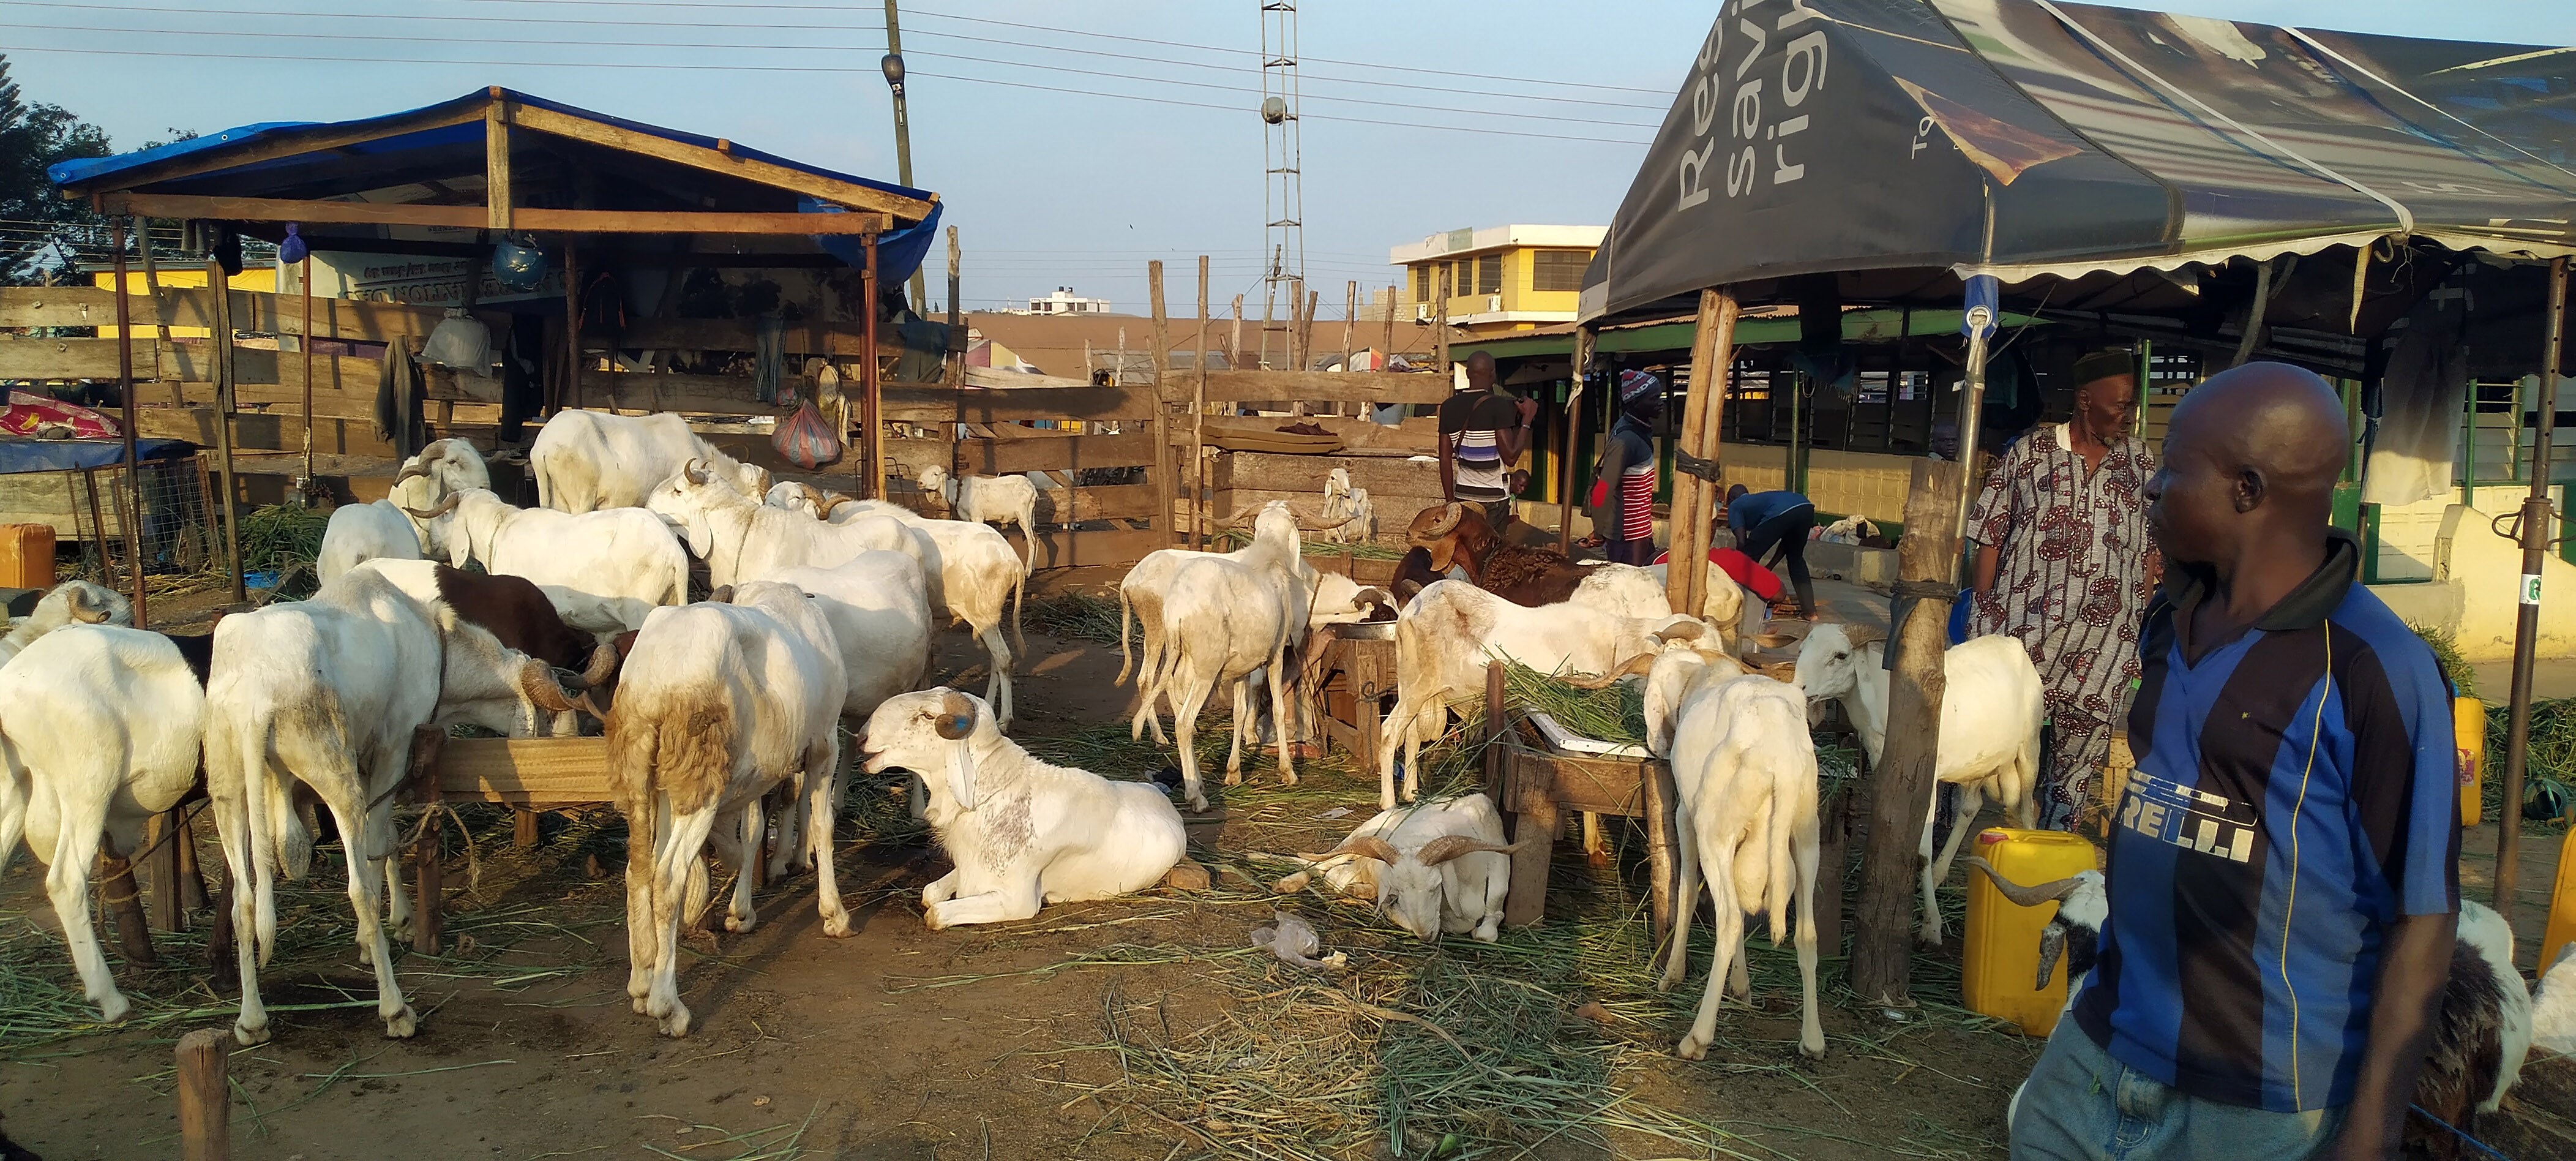 Our runs sometimes take us past the goat and sheep market in Accra.